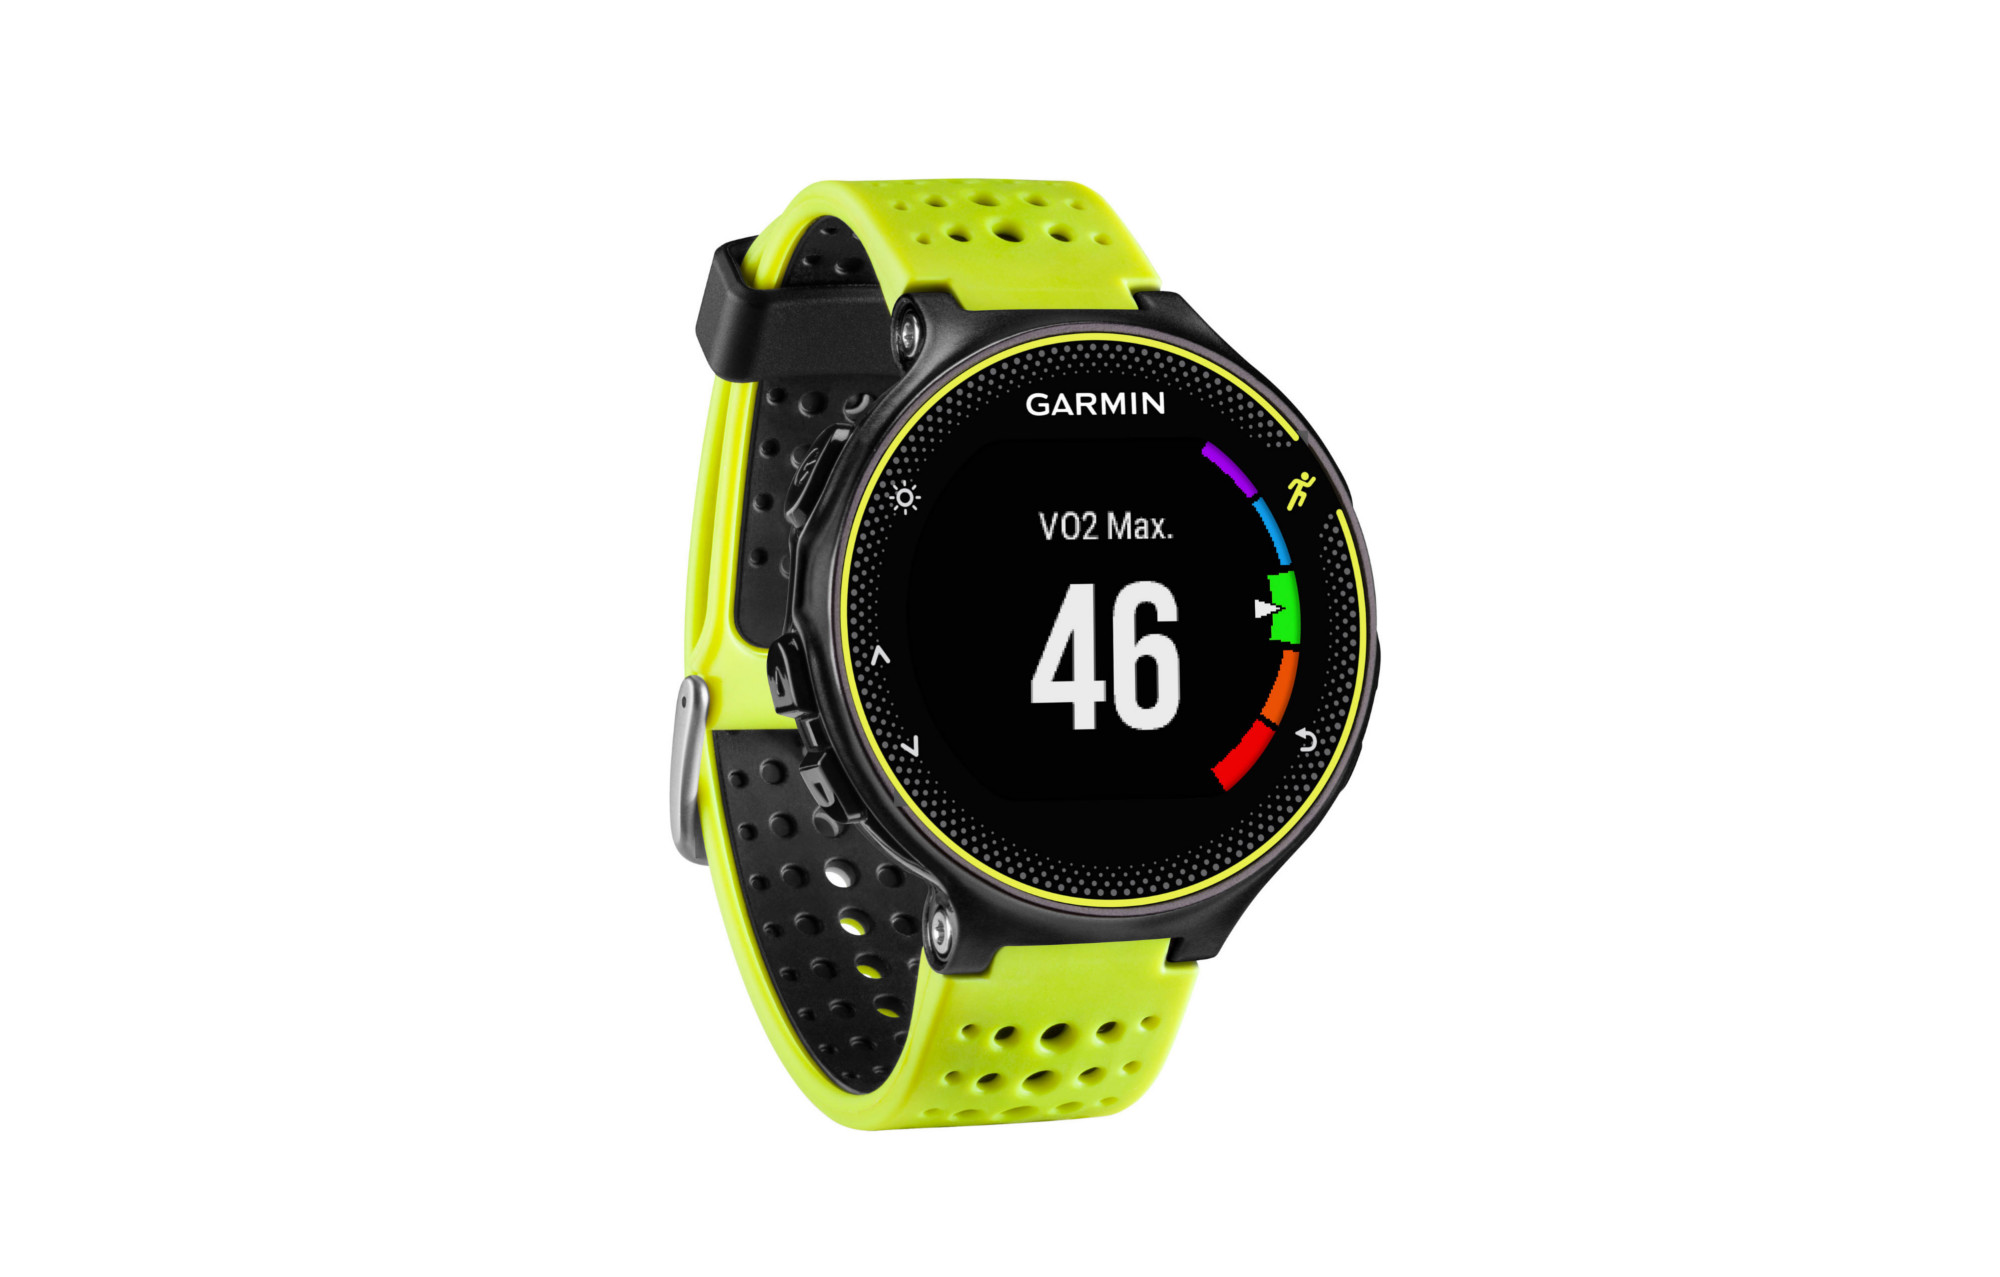 montre gps garmin forerunner 230 noir jaune. Black Bedroom Furniture Sets. Home Design Ideas